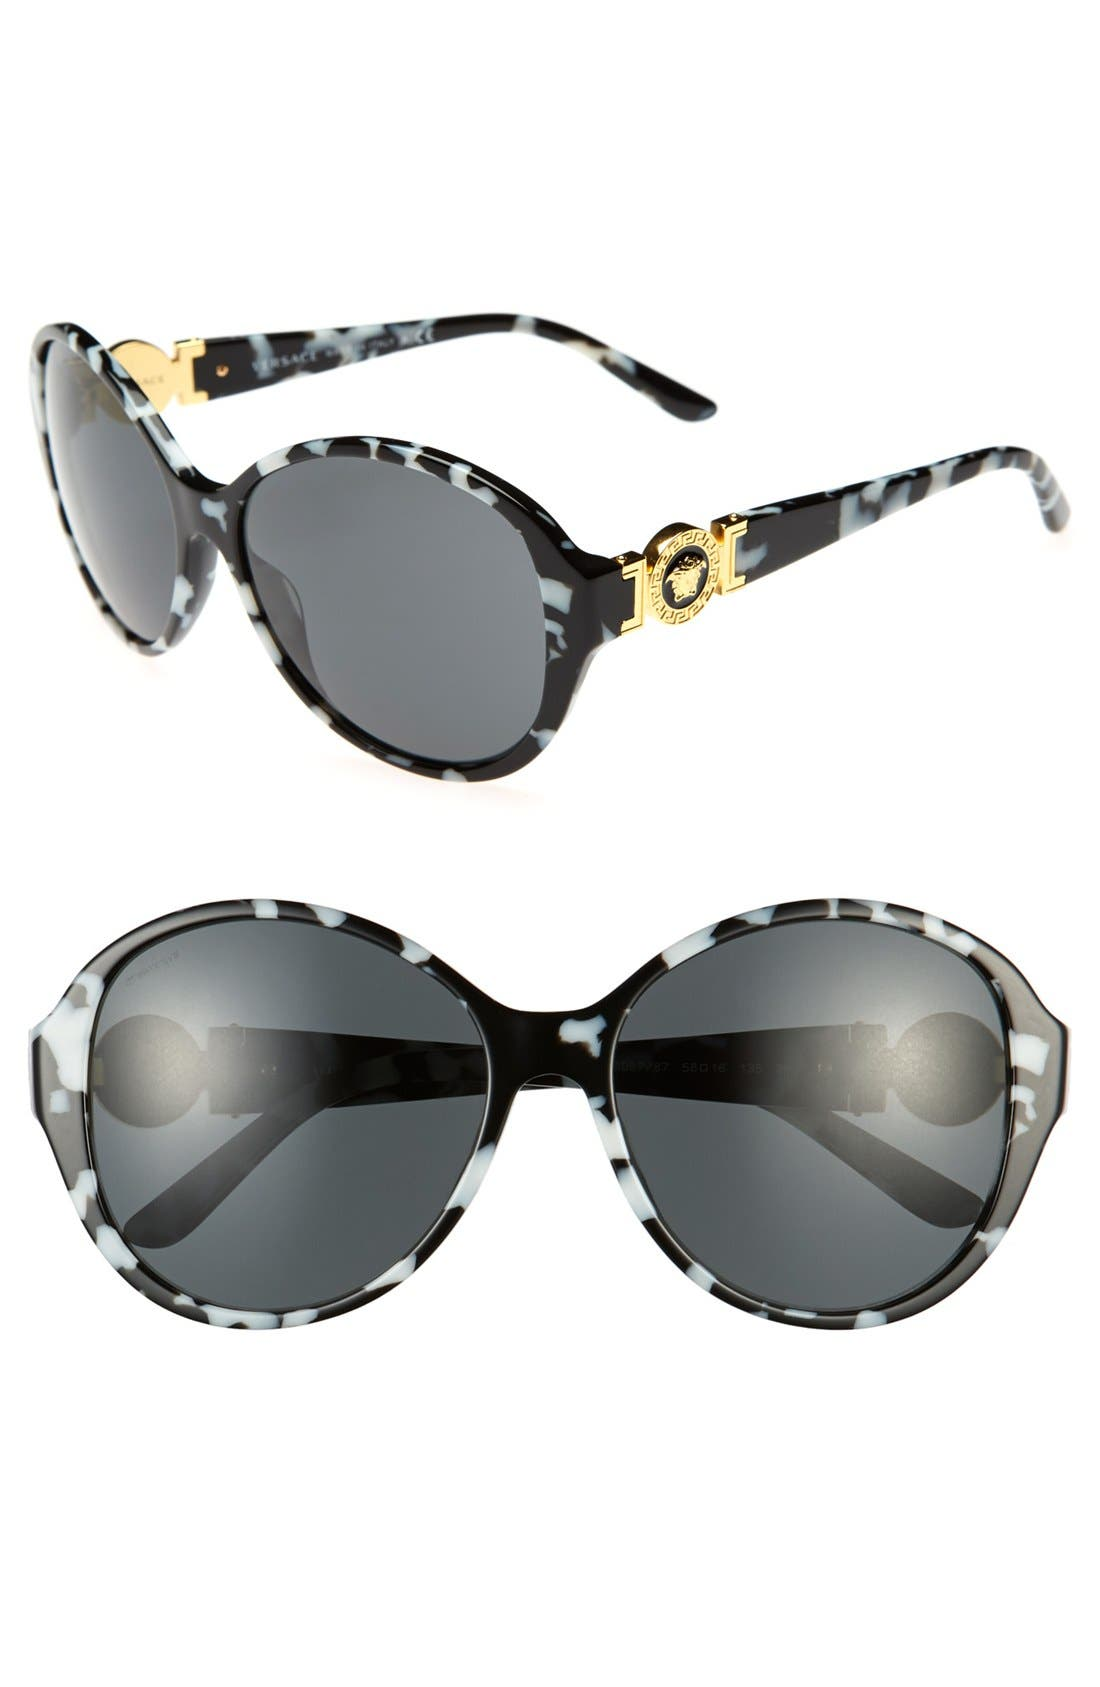 Main Image - Versace 58mm Round Sunglasses